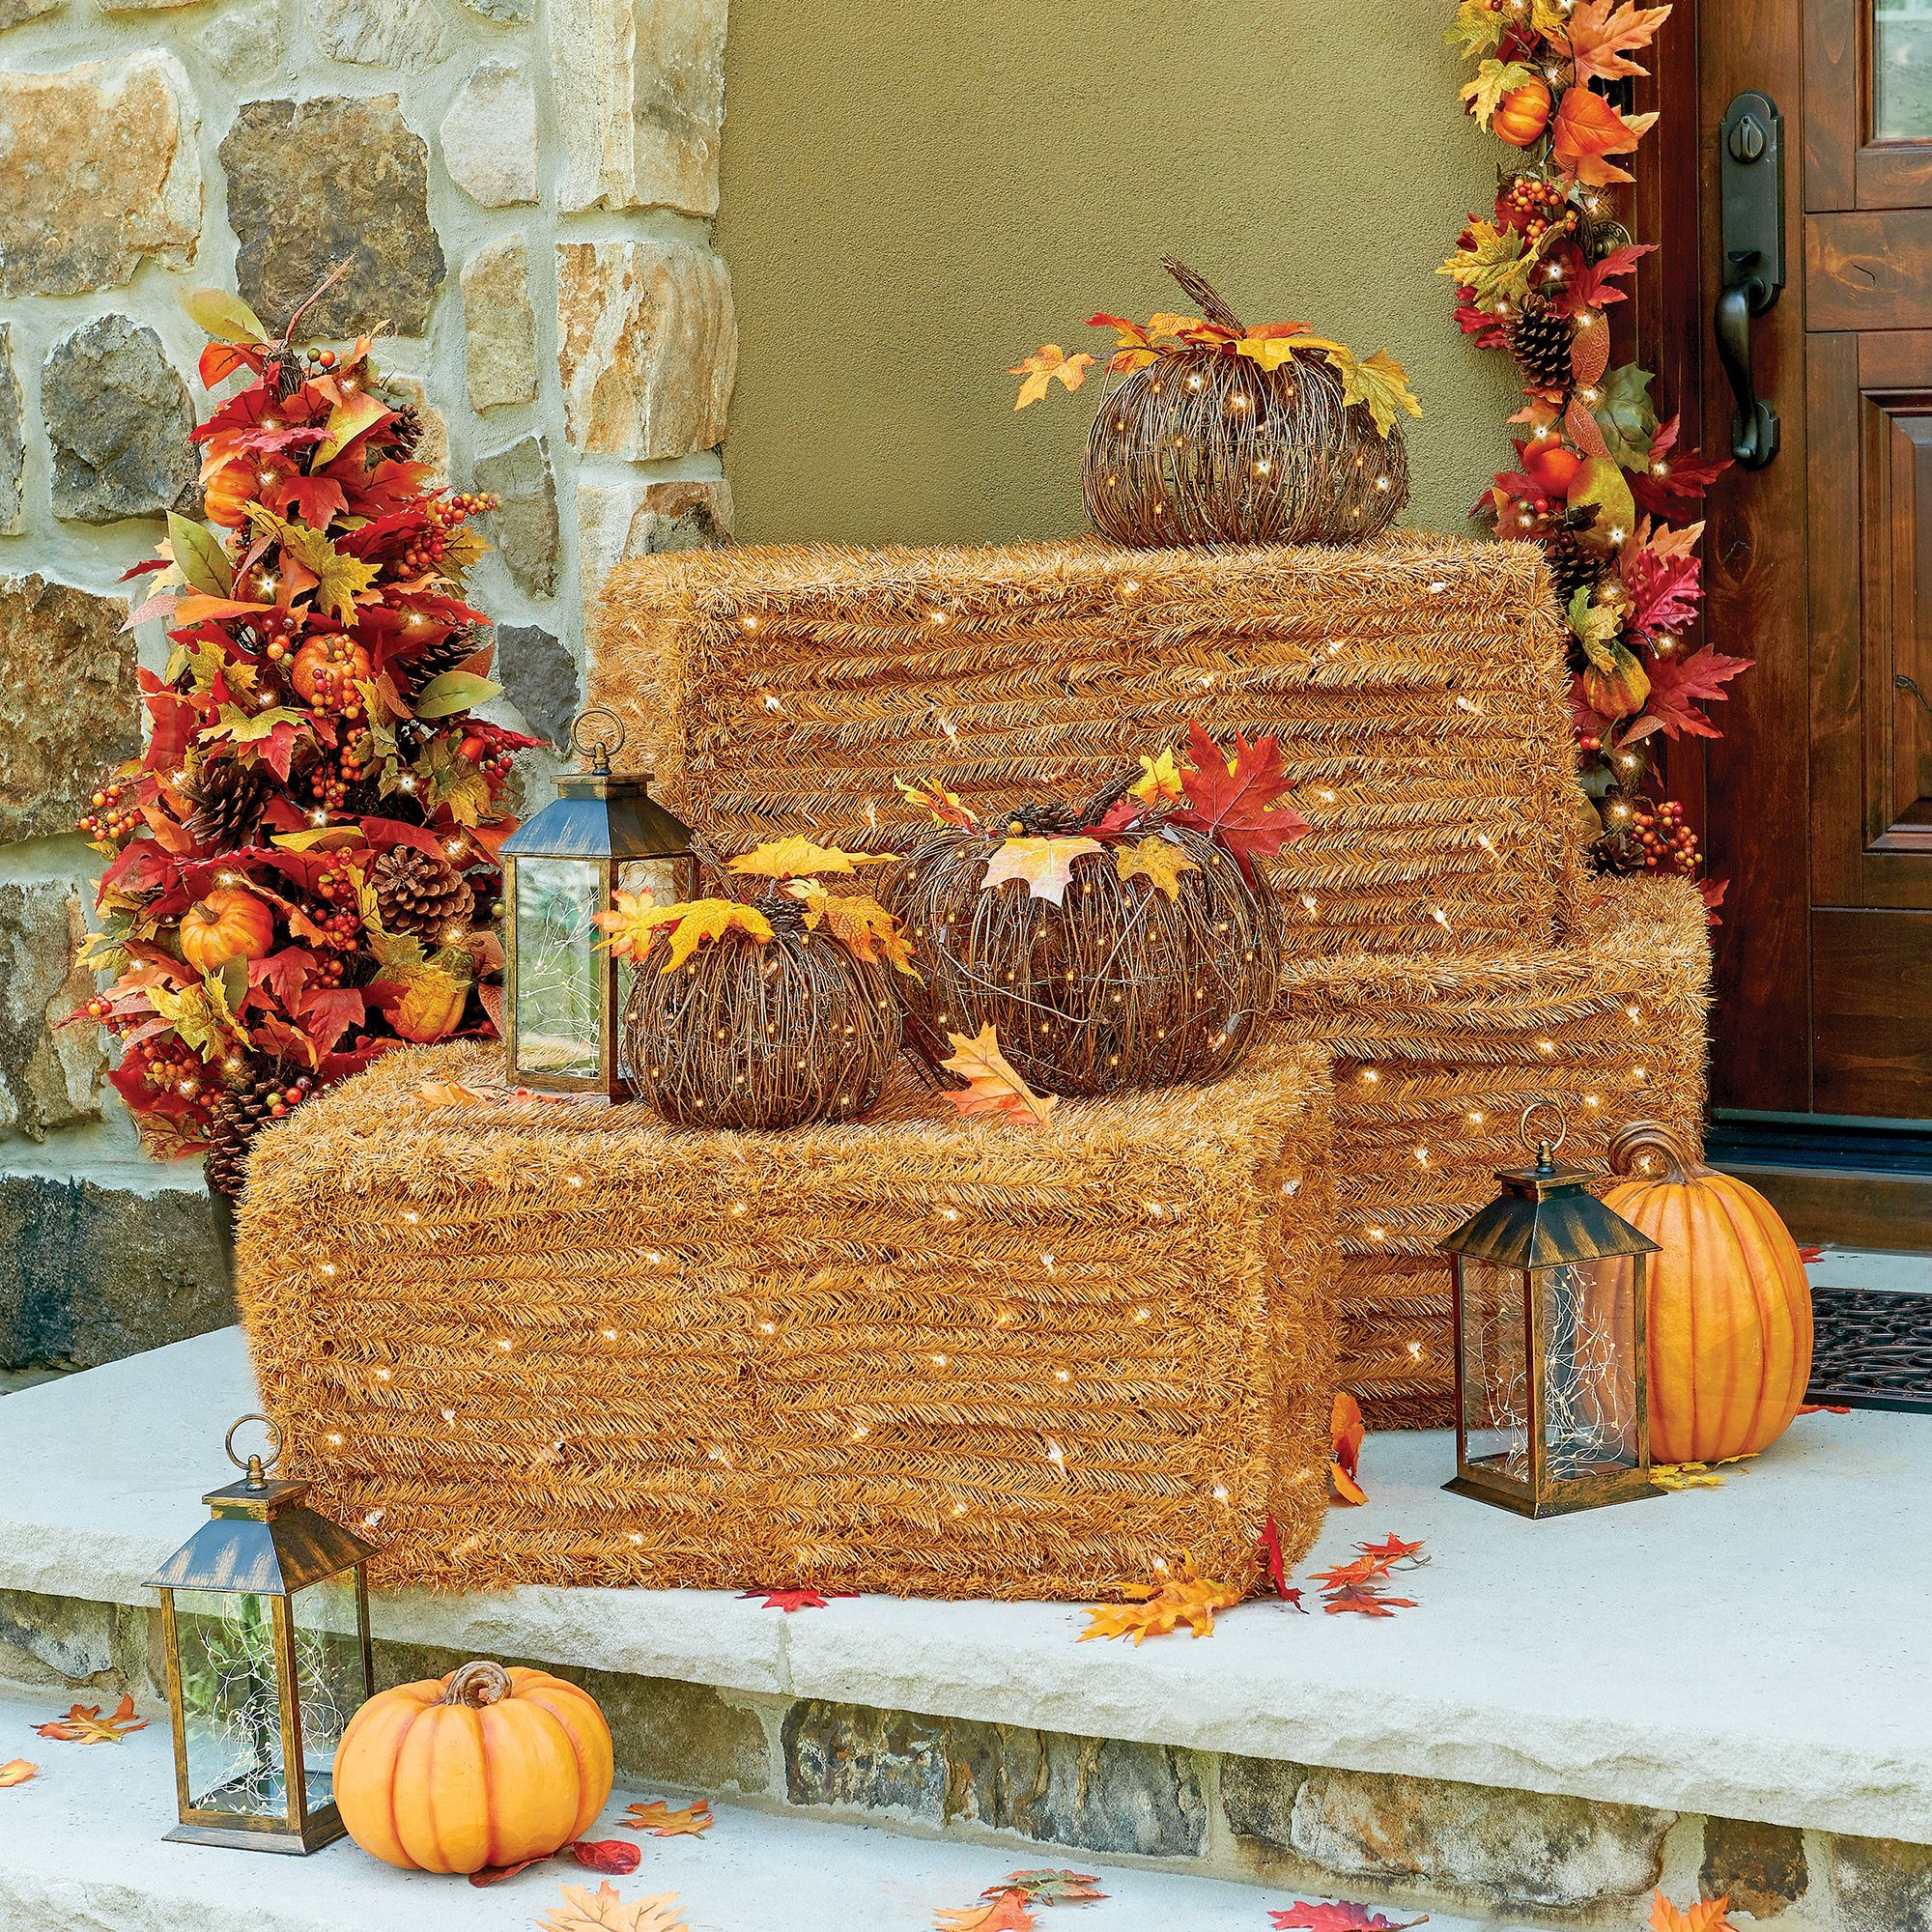 Pre Wedding Outdoor Ideas: Lighted Faux Hay Bails Add Country Charm To Any Entryway